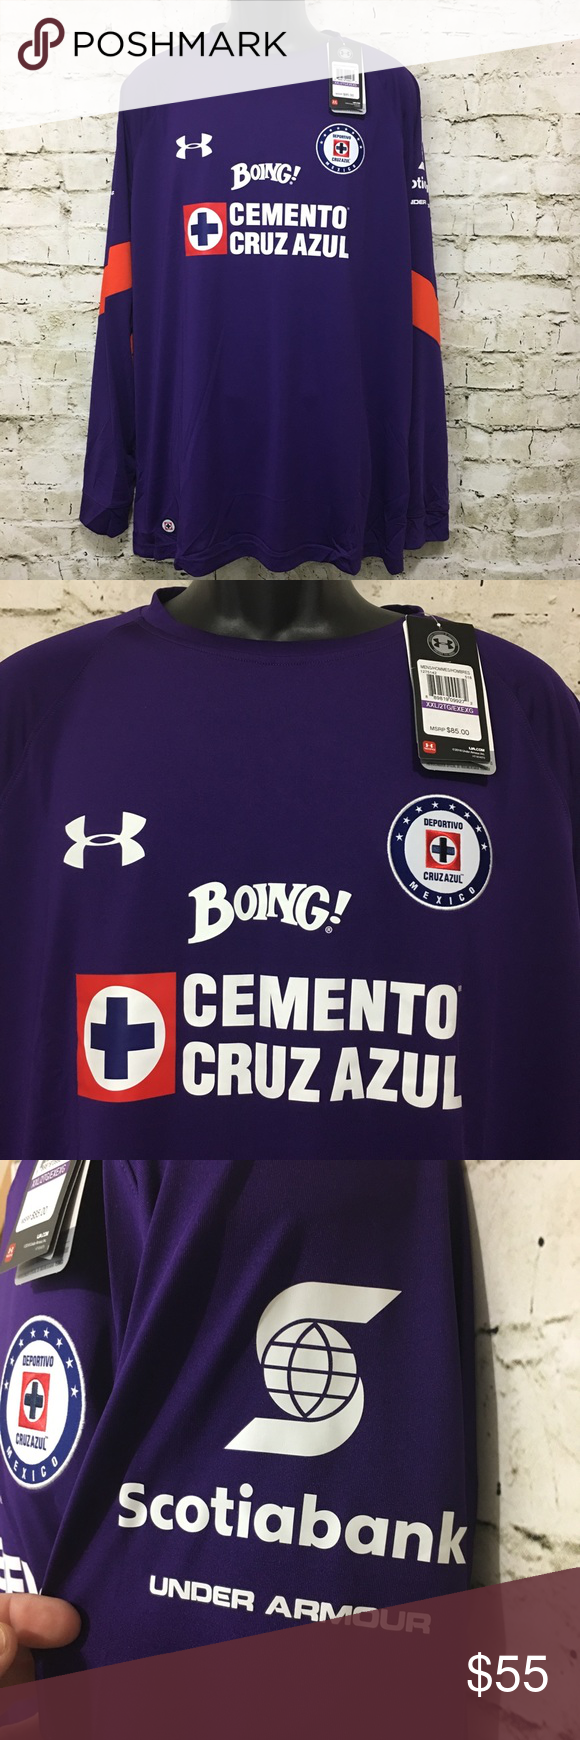 395ff15cbd1 ... under armour deportivo cruz azul soccer jersey 2xl this is a new with  tags under armour